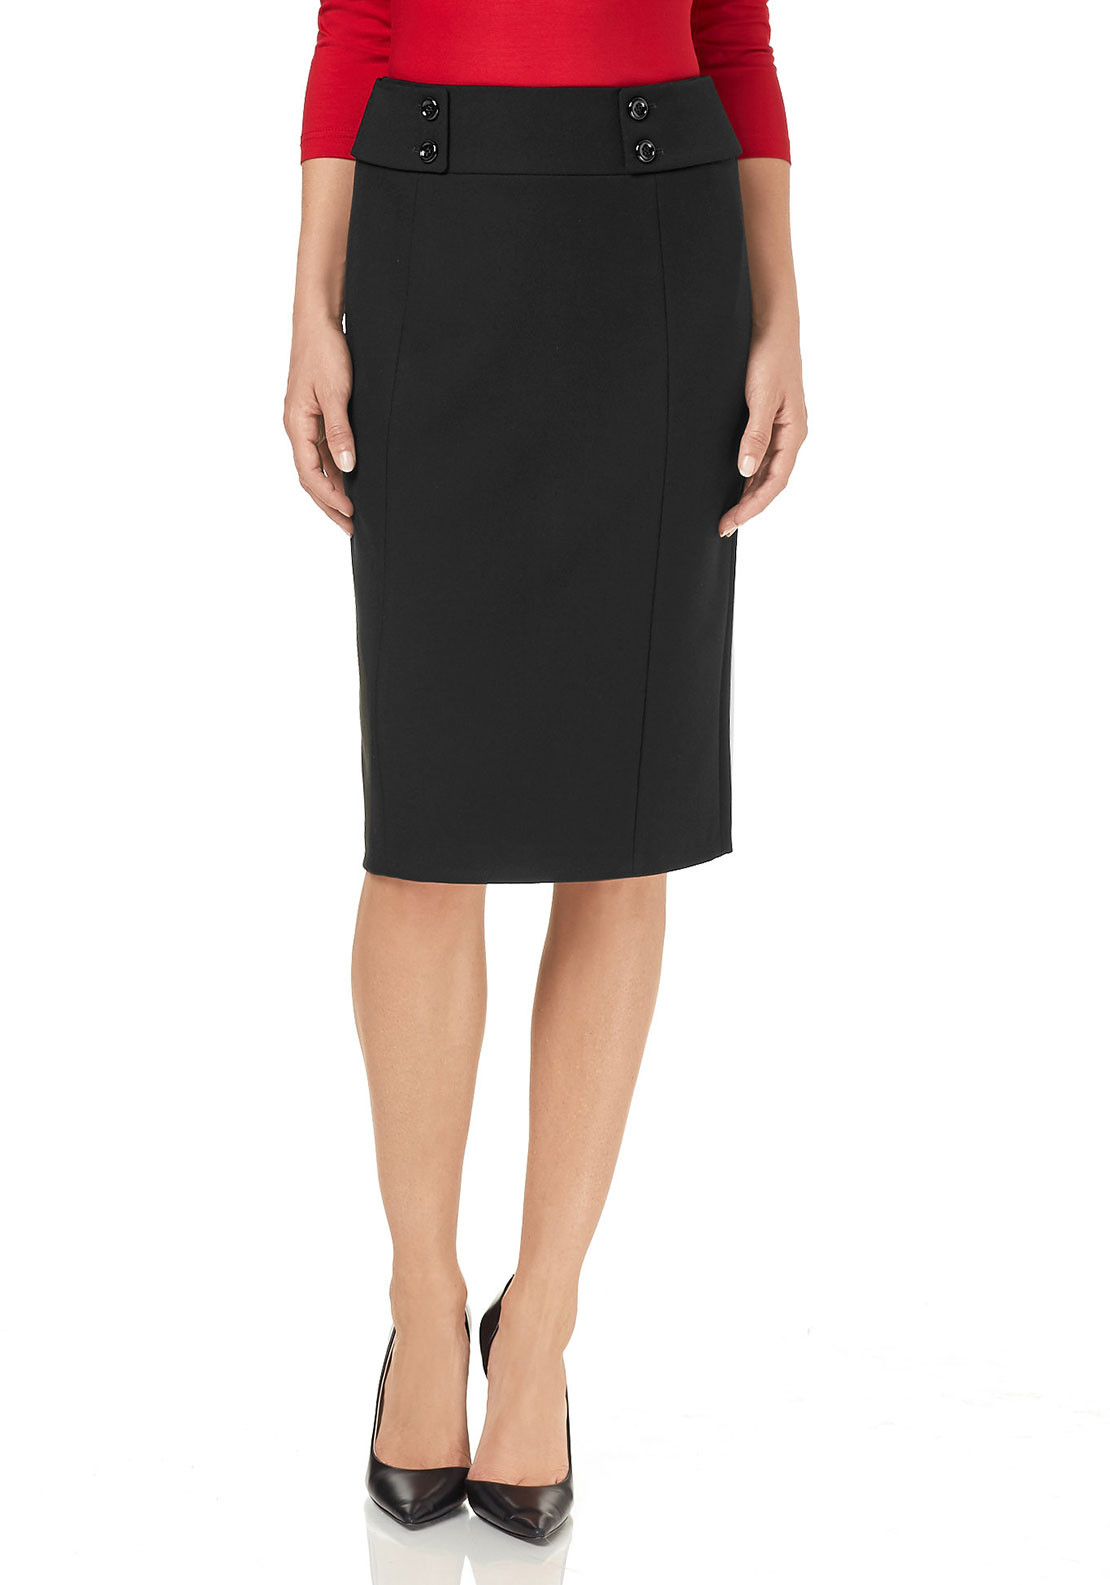 Gerry Weber Crepe Pencil Skirt, Black